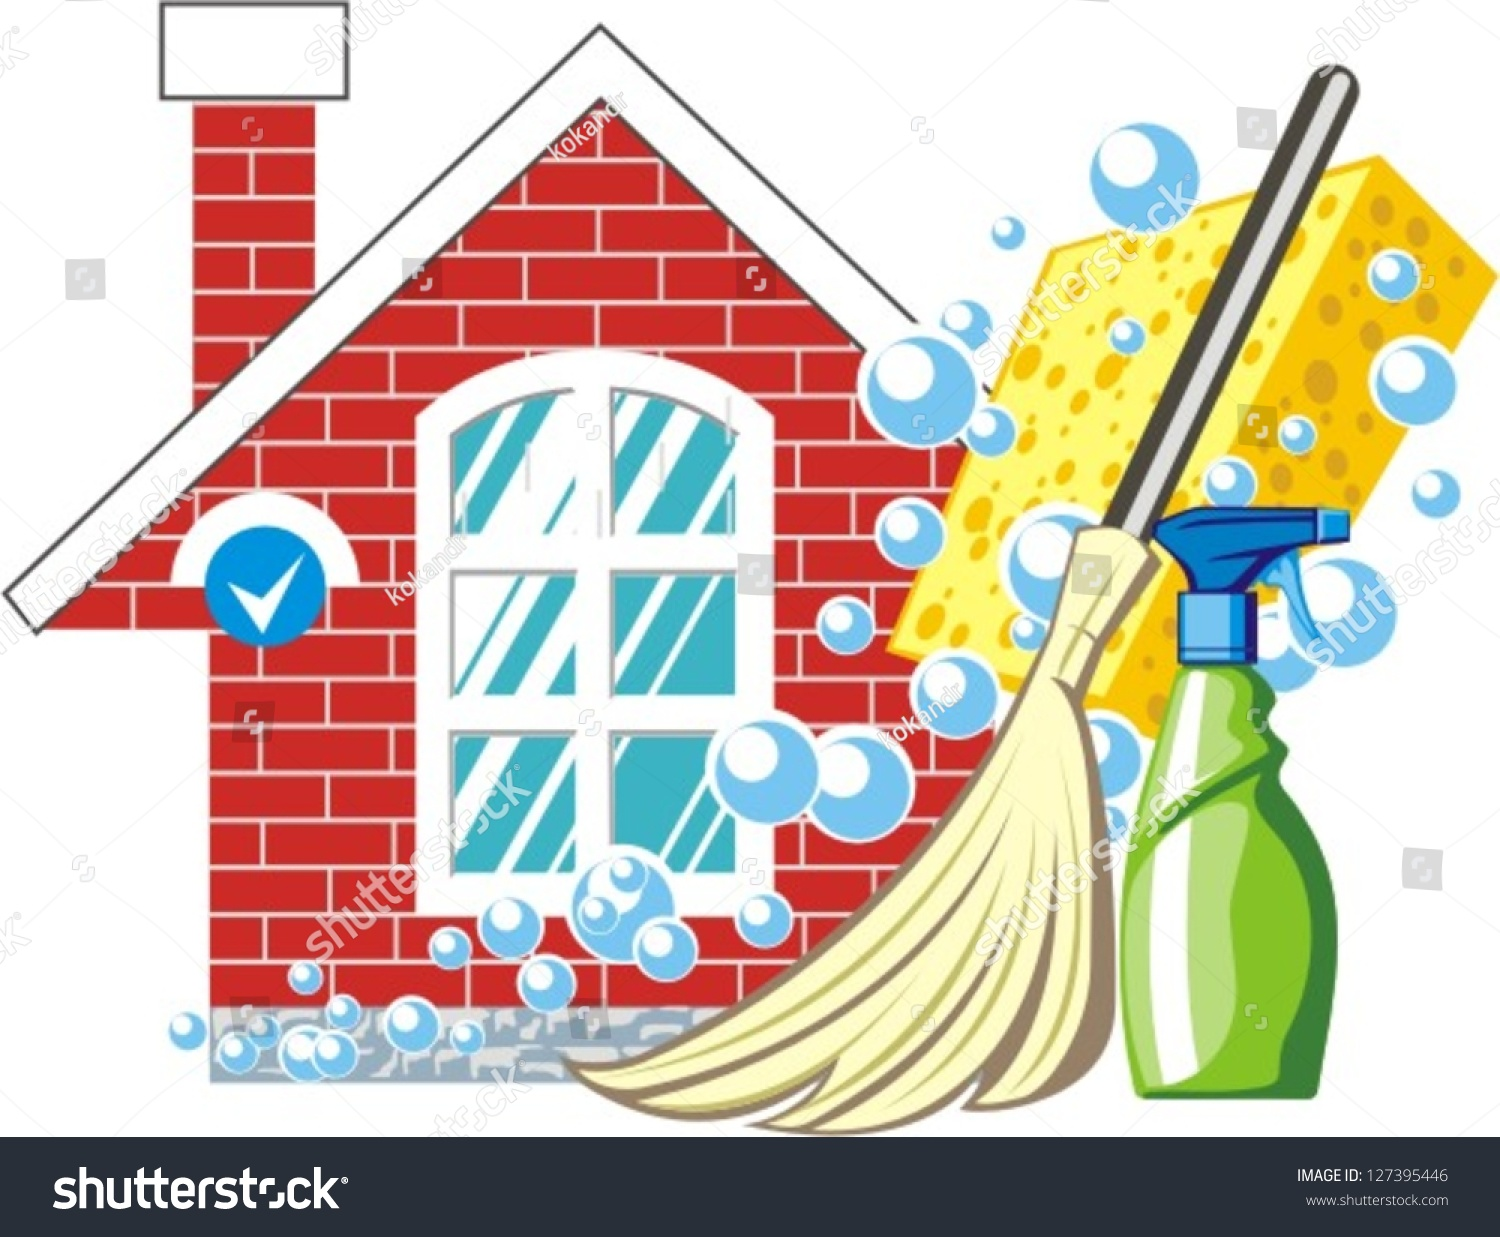 House cleaning supplies clip art house cleaning stock vectors amp vector